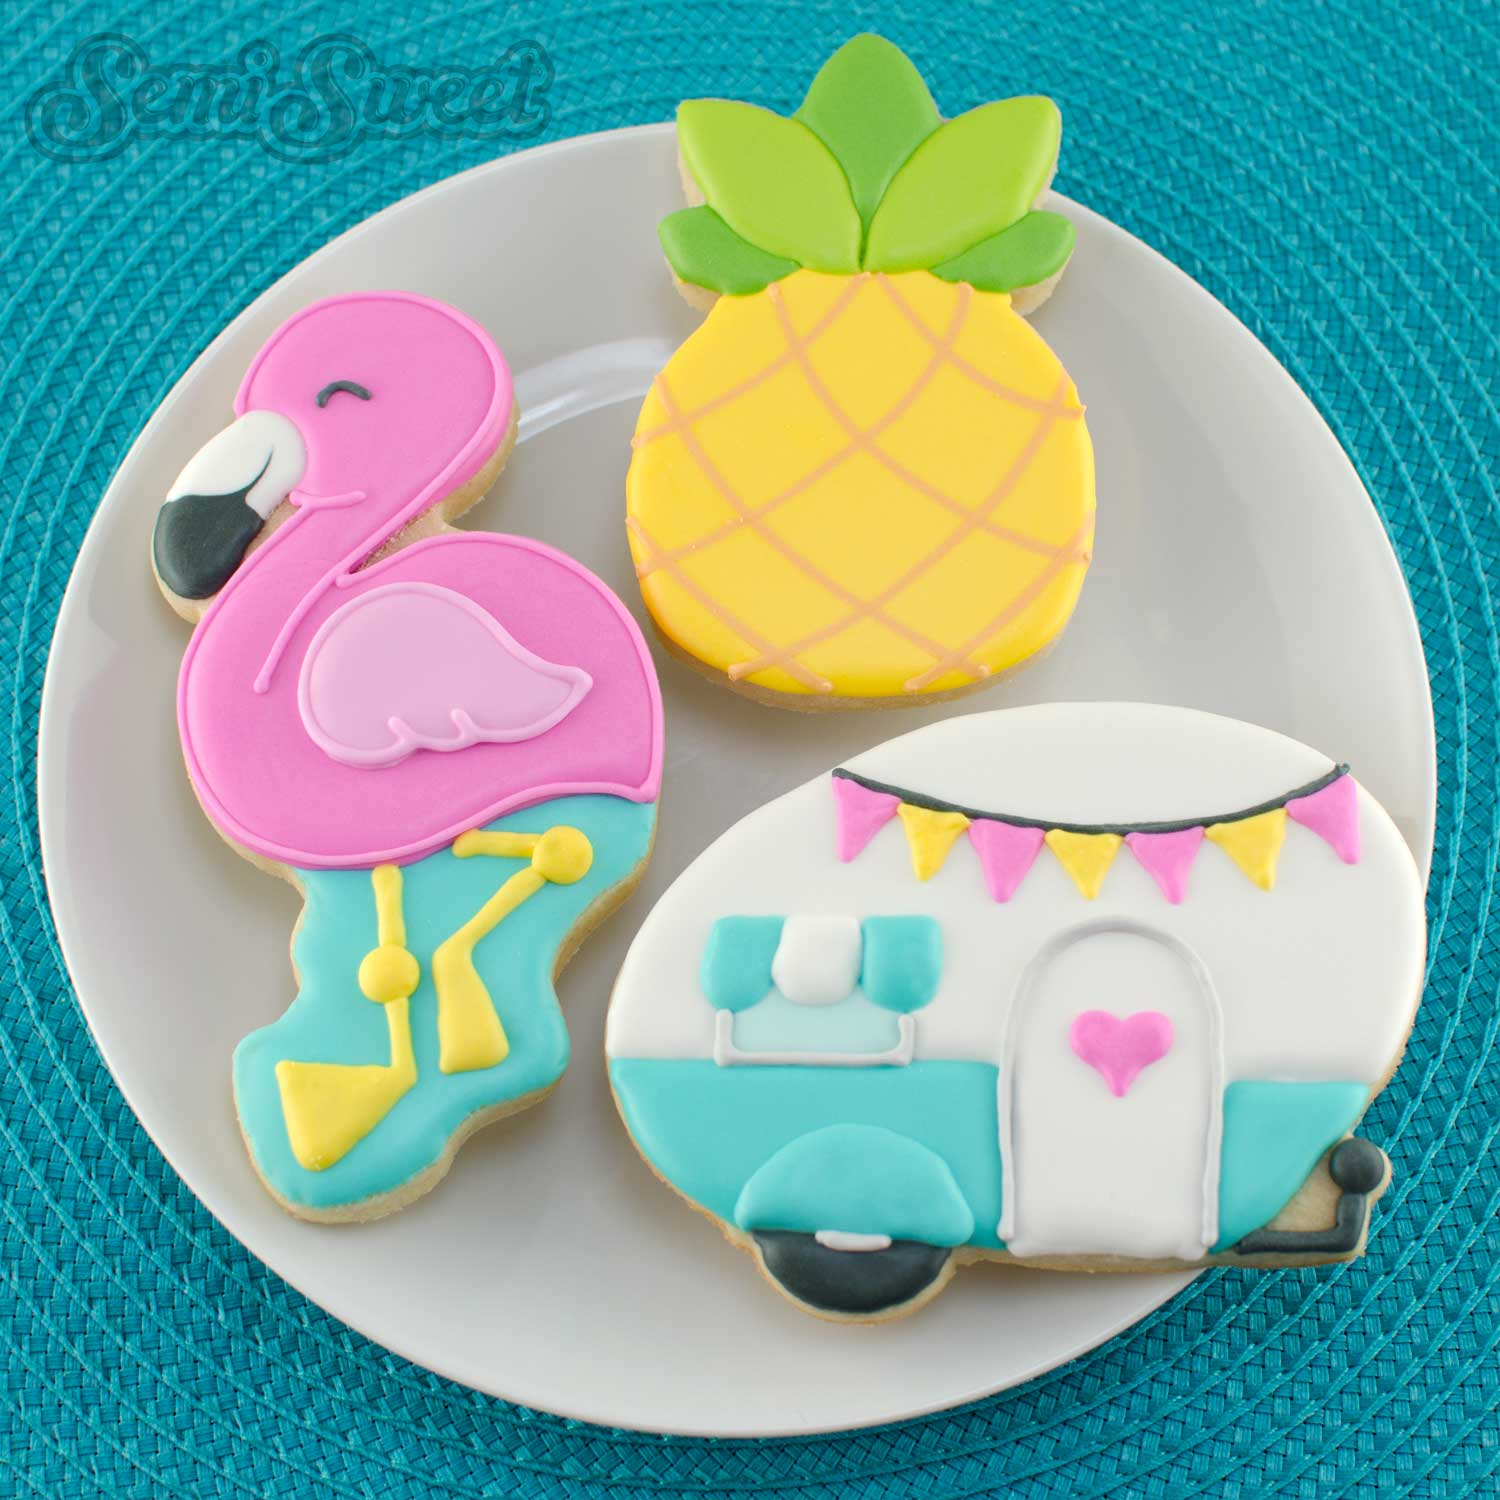 flamingo cookies with pineapple and camper